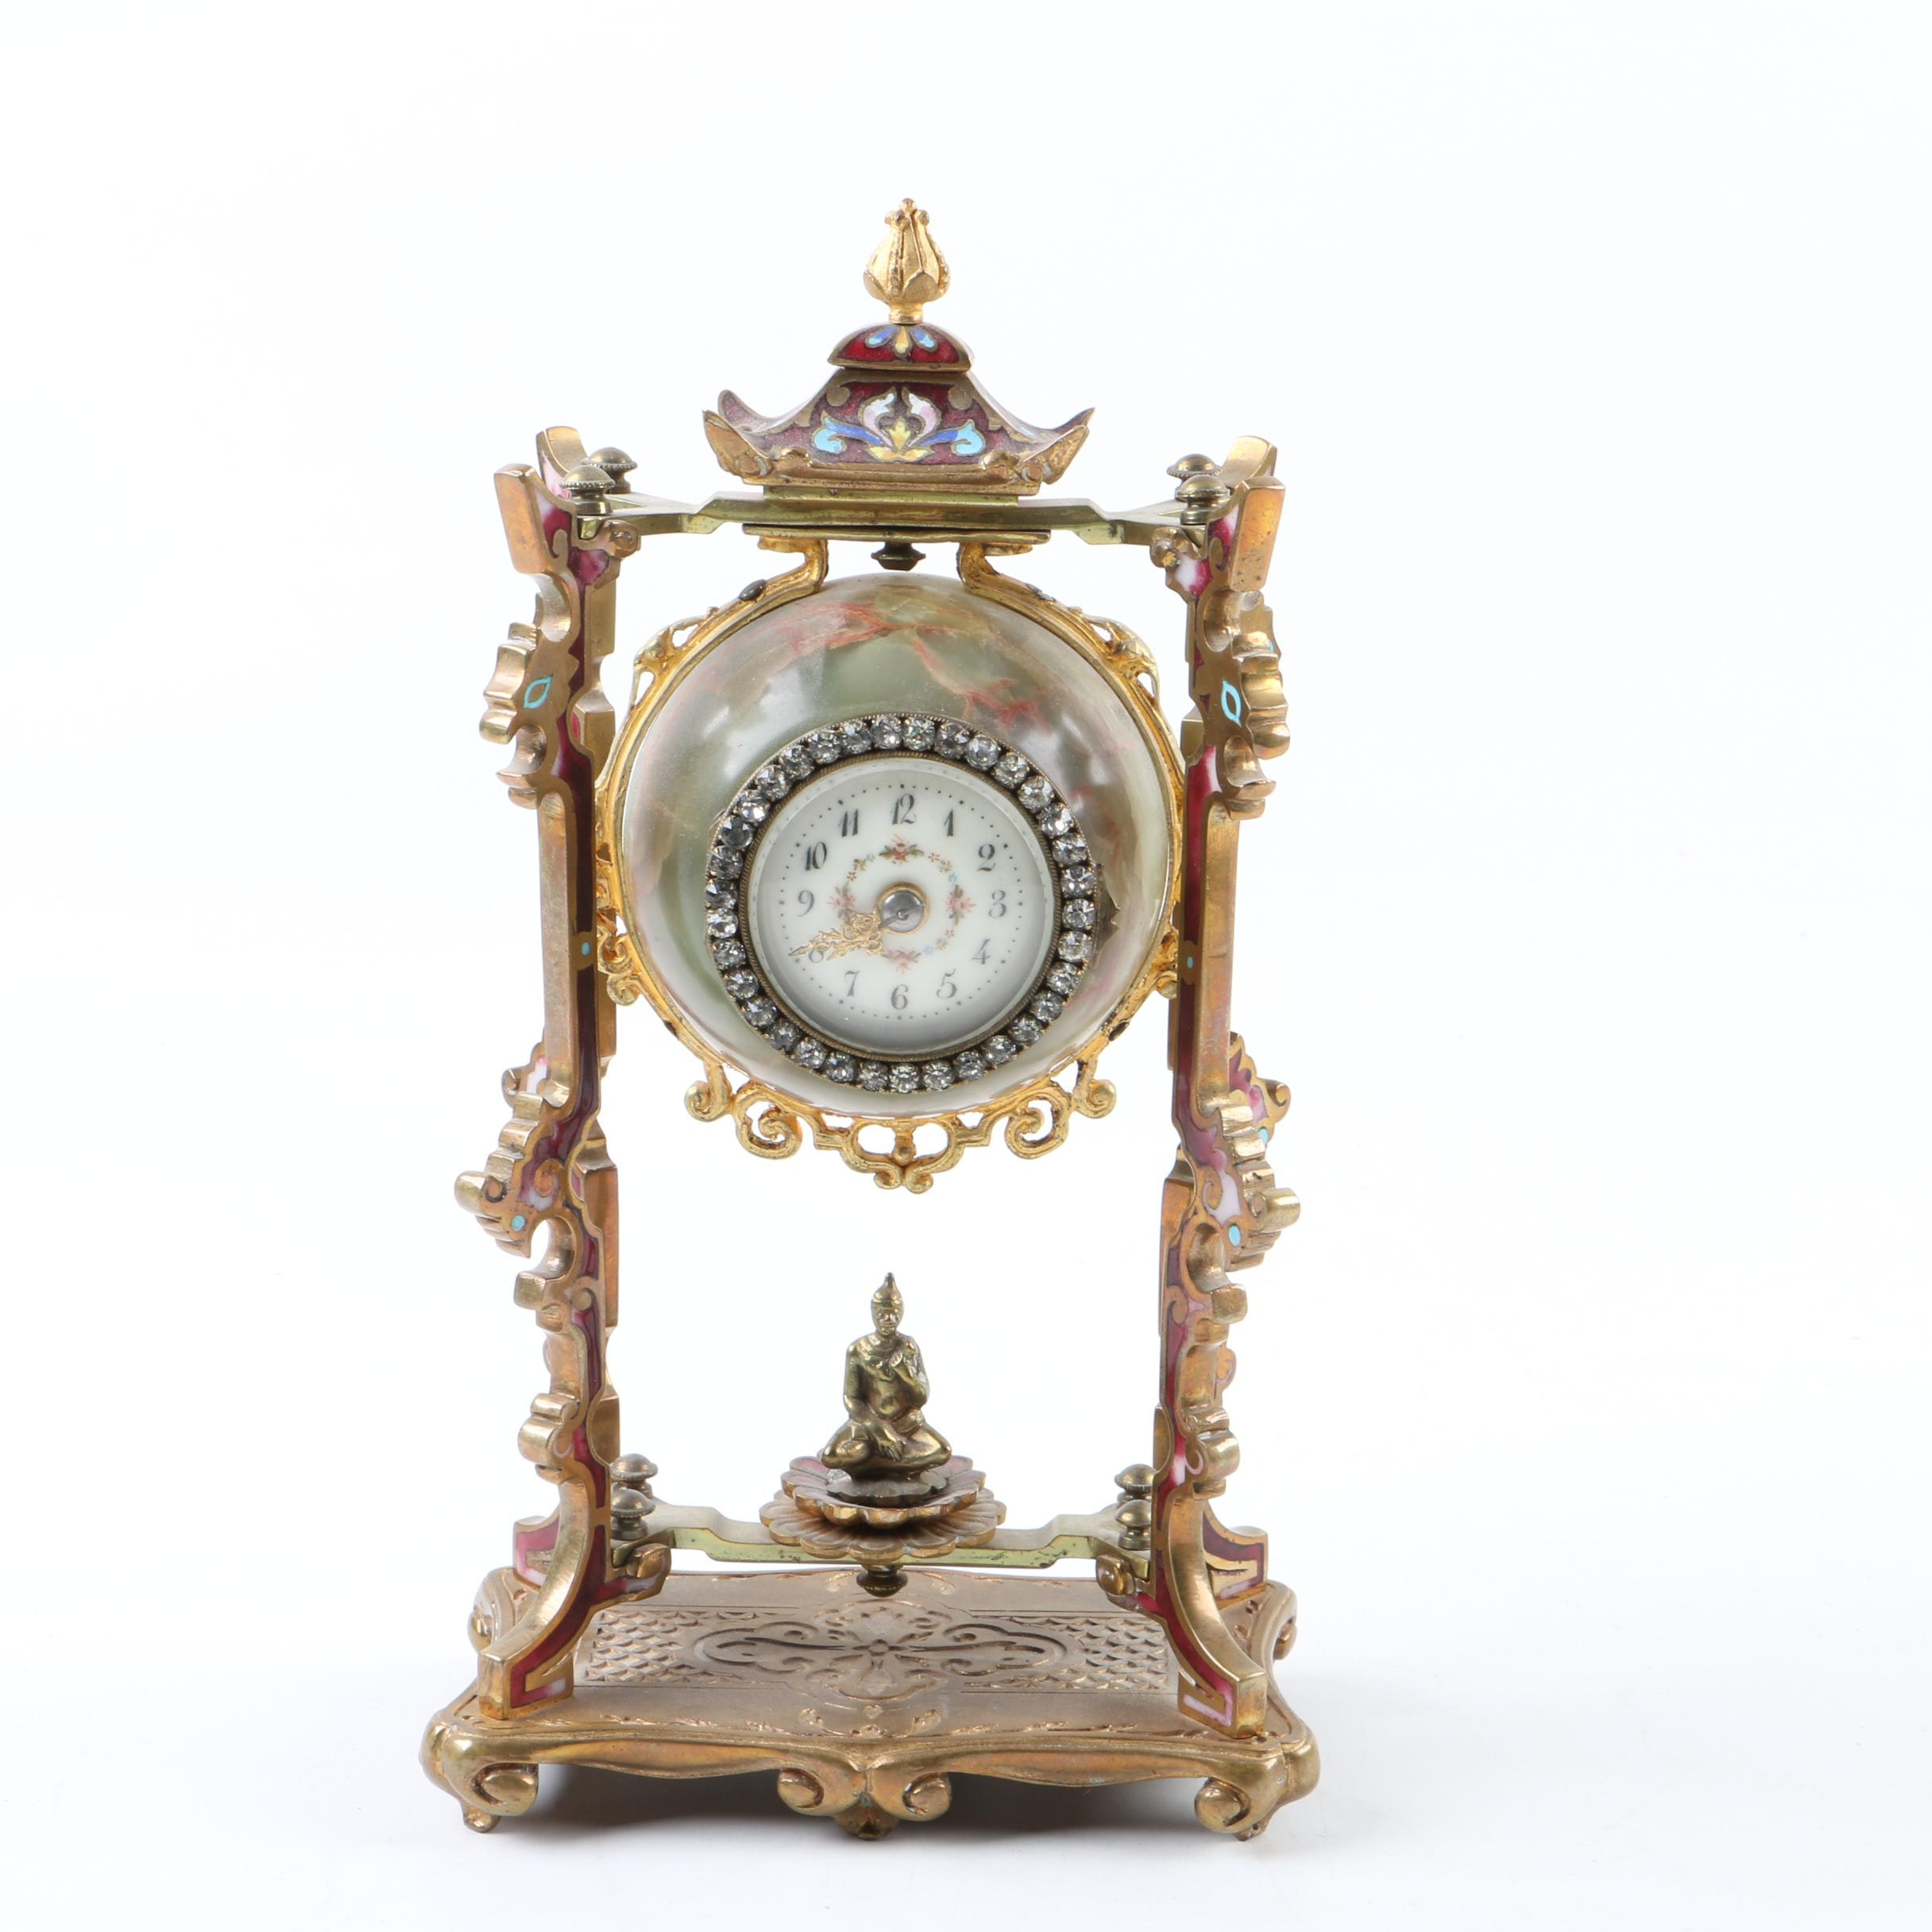 Decorative Brass Mantel Clock with Rhinestone Accents